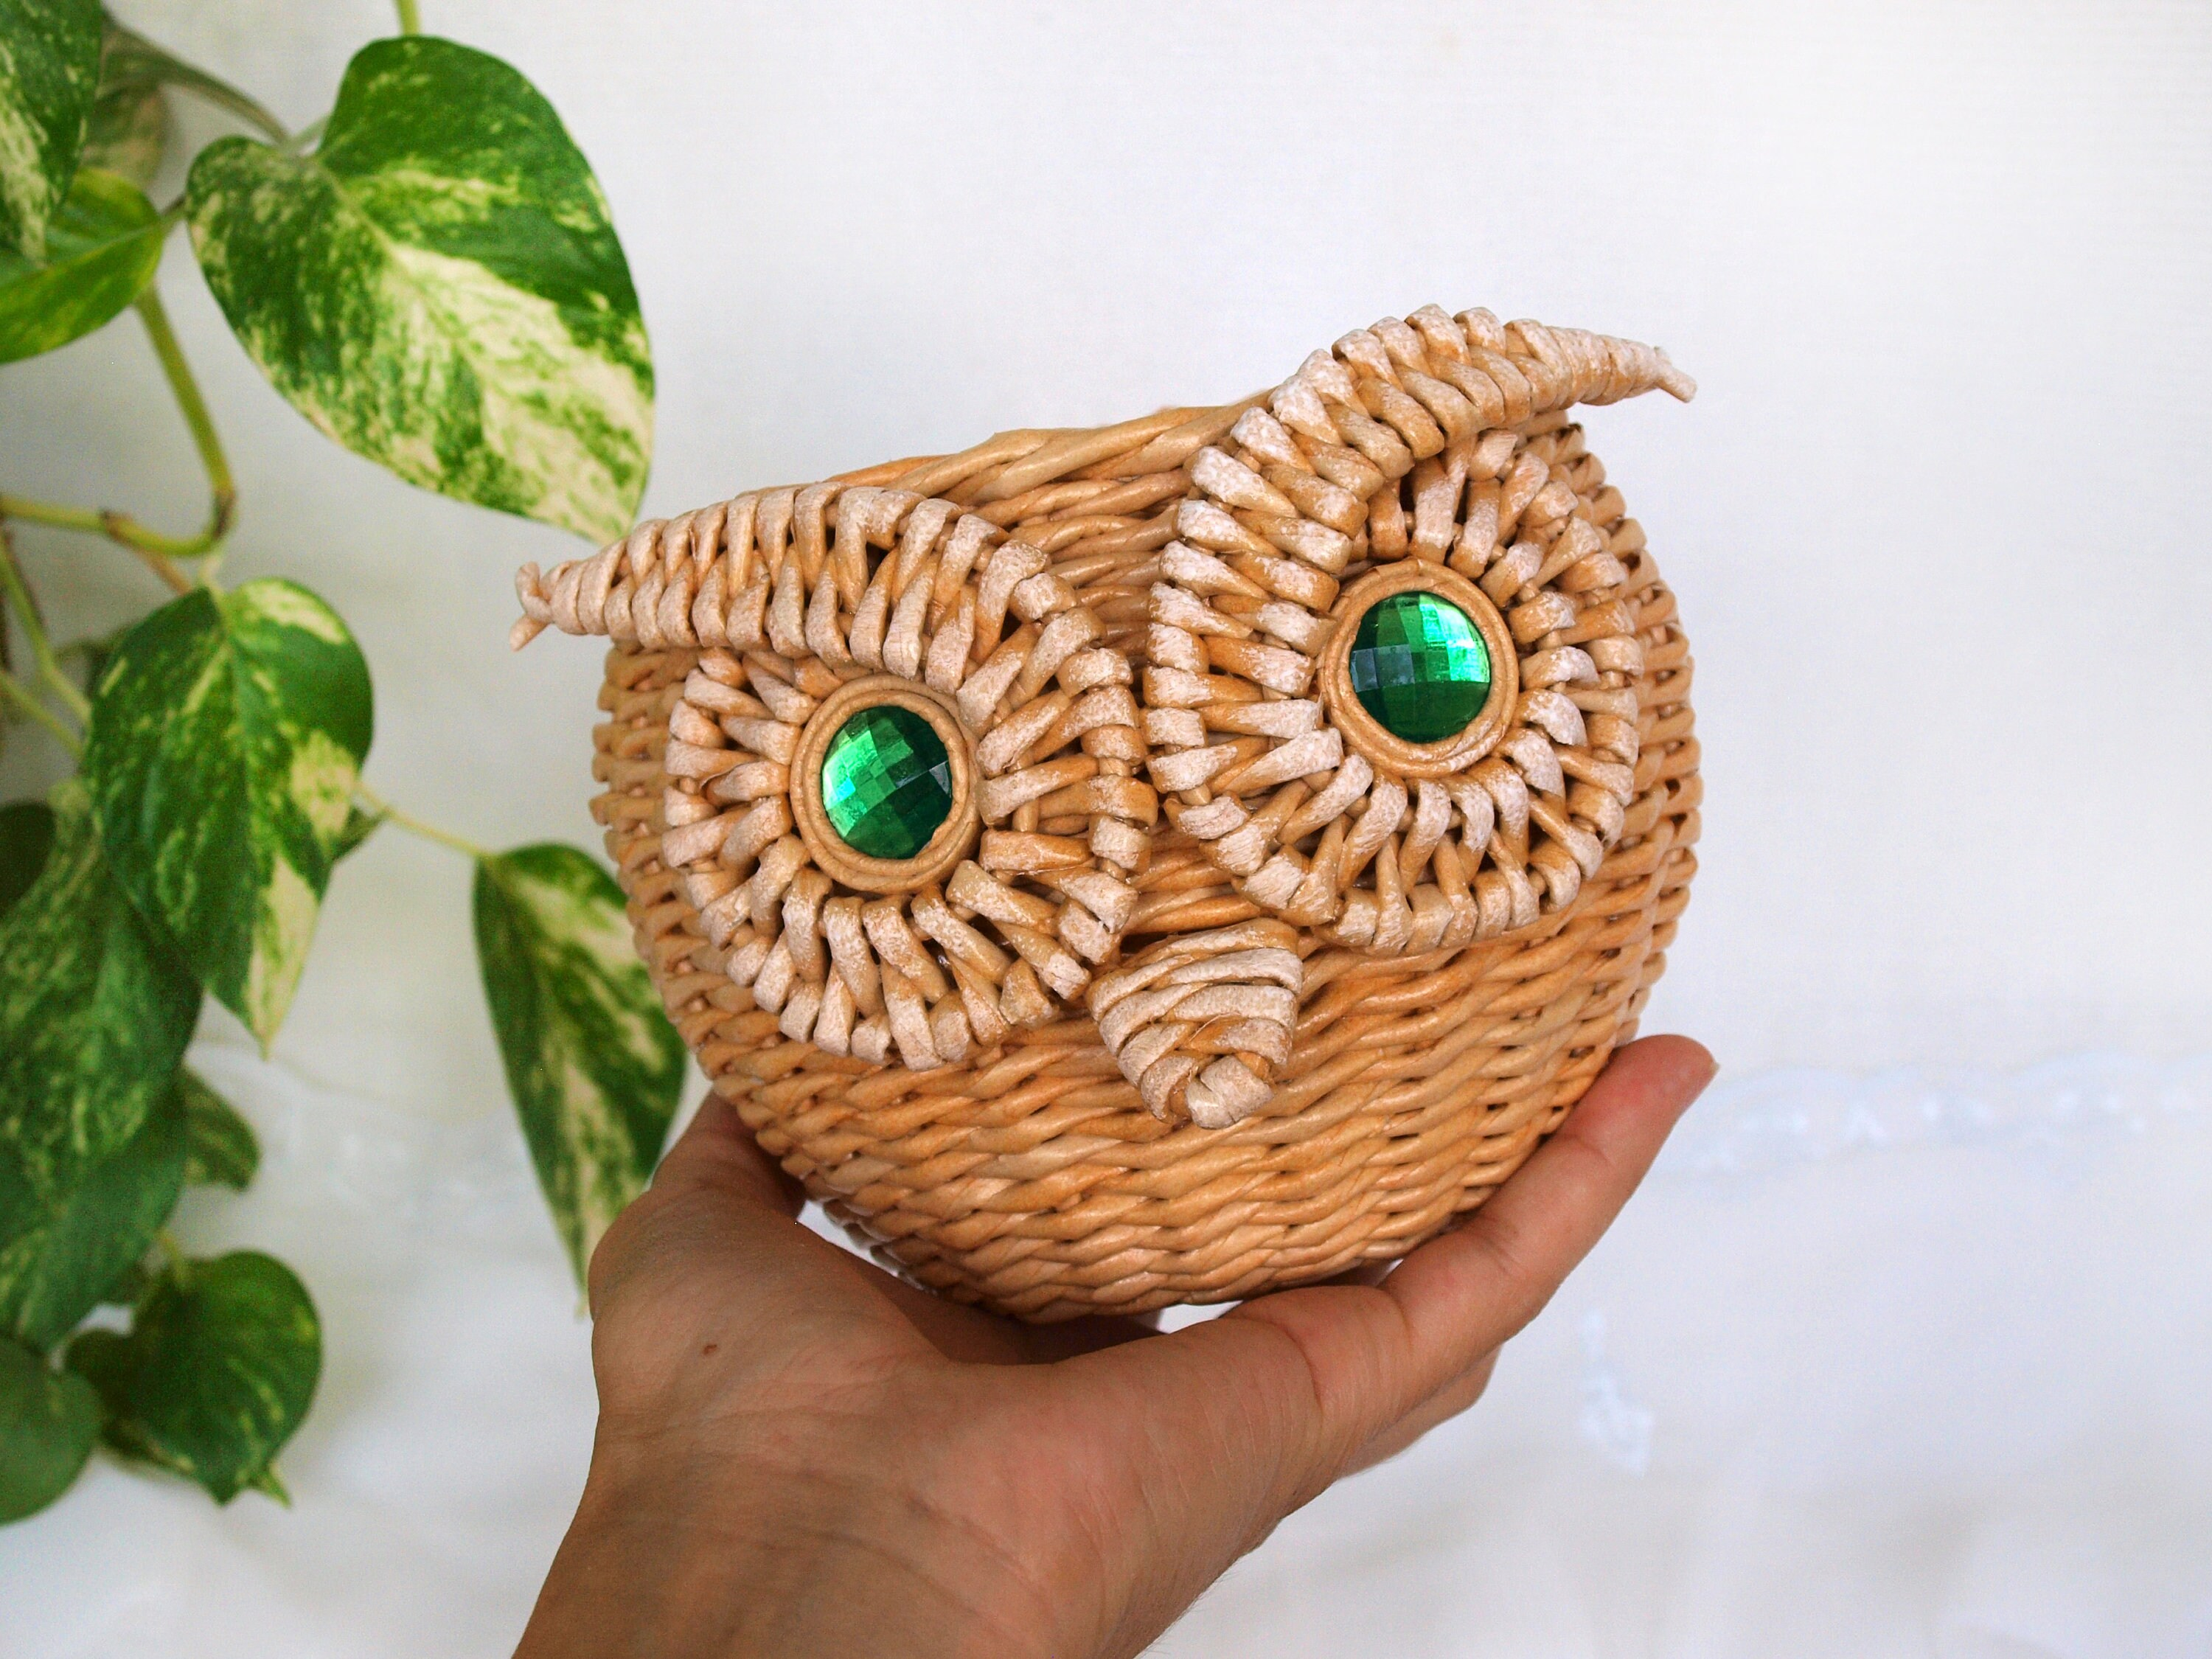 Cute Owl Decor Owl Wicker Basket Vase Art Decor Outdoor Garden Decor Yard Garden Art Unique Gift Cute Owl Decor Owl Cute Lover Gift Christmas Gift